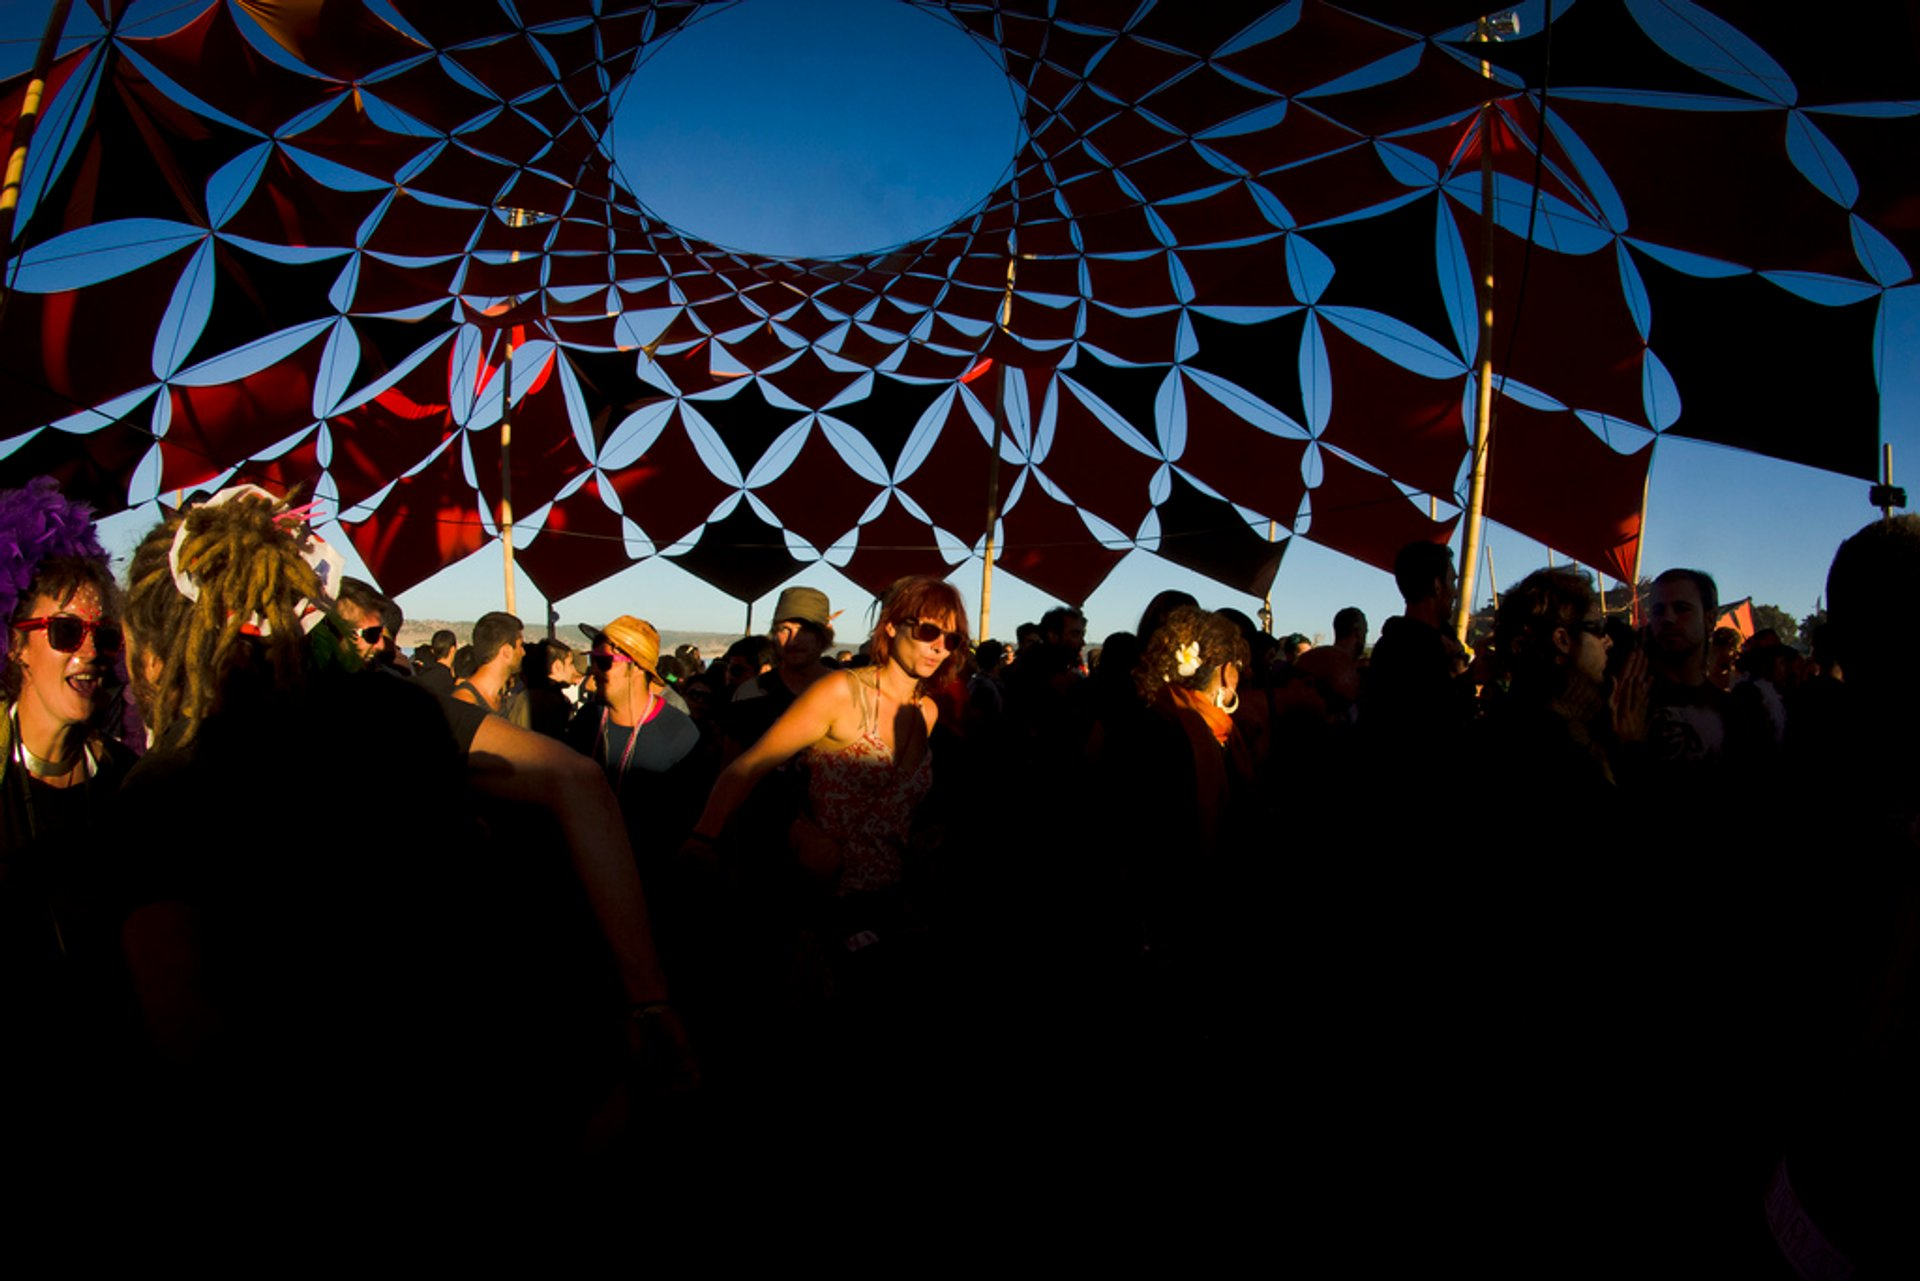 Best time to see Boom Festival in Portugal 2019